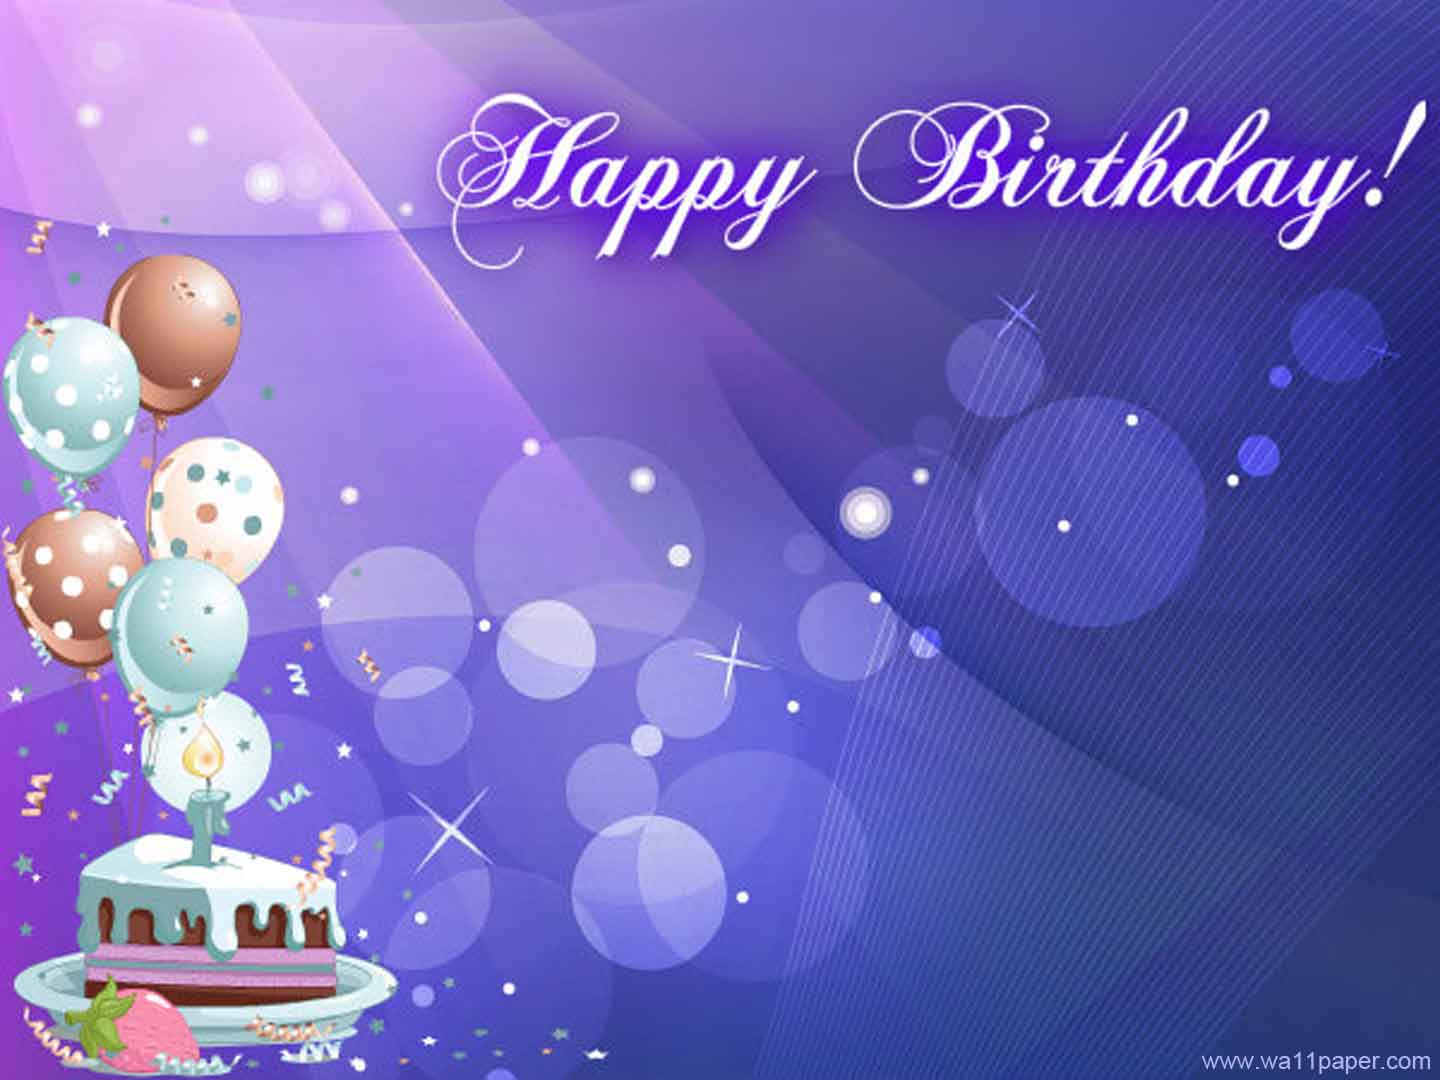 96 Birthday Hd Wallpapers Background Images Wallpaper